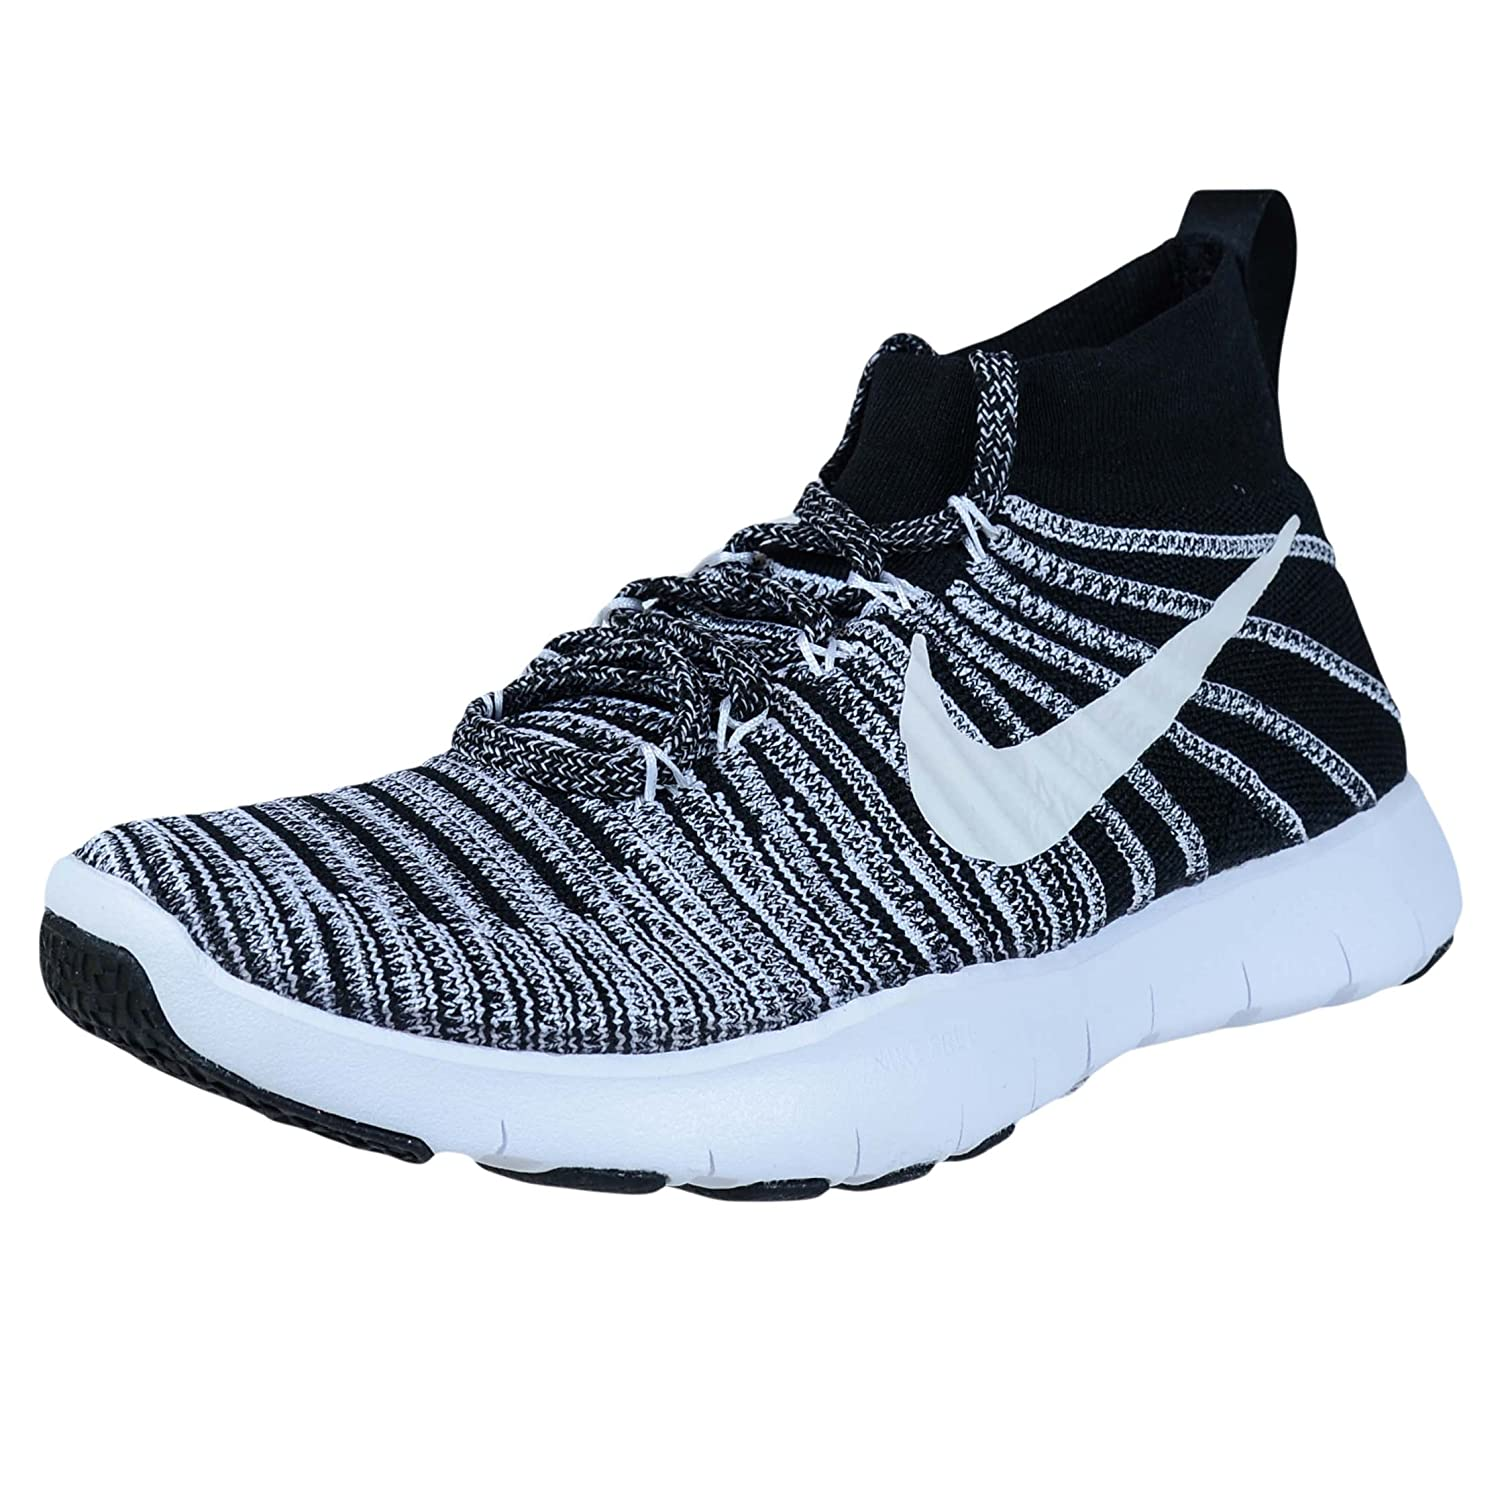 finest selection d10c6 9f173 Amazon.com  Nike Men s Free Tr Force Flyknit Training Shoe  Nike  Shoes